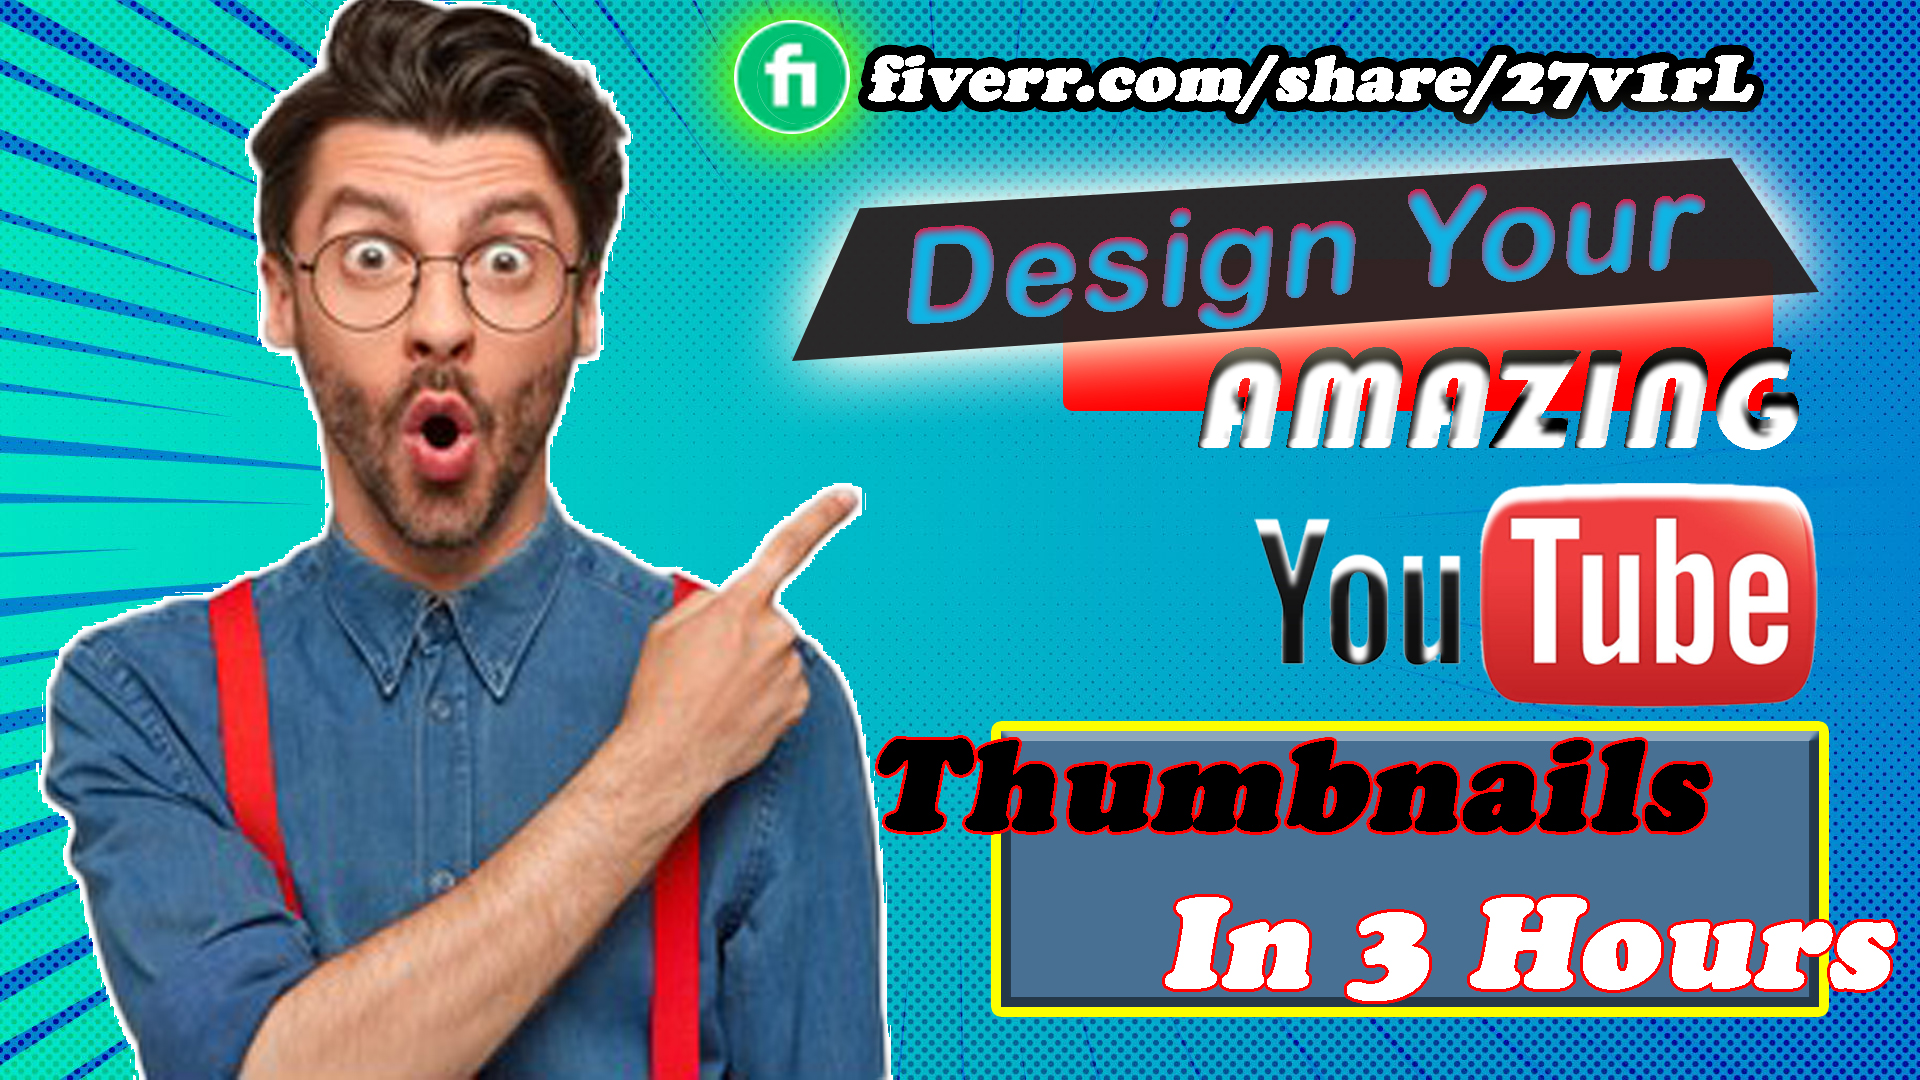 I will design youtube thumbnails in 3 hours